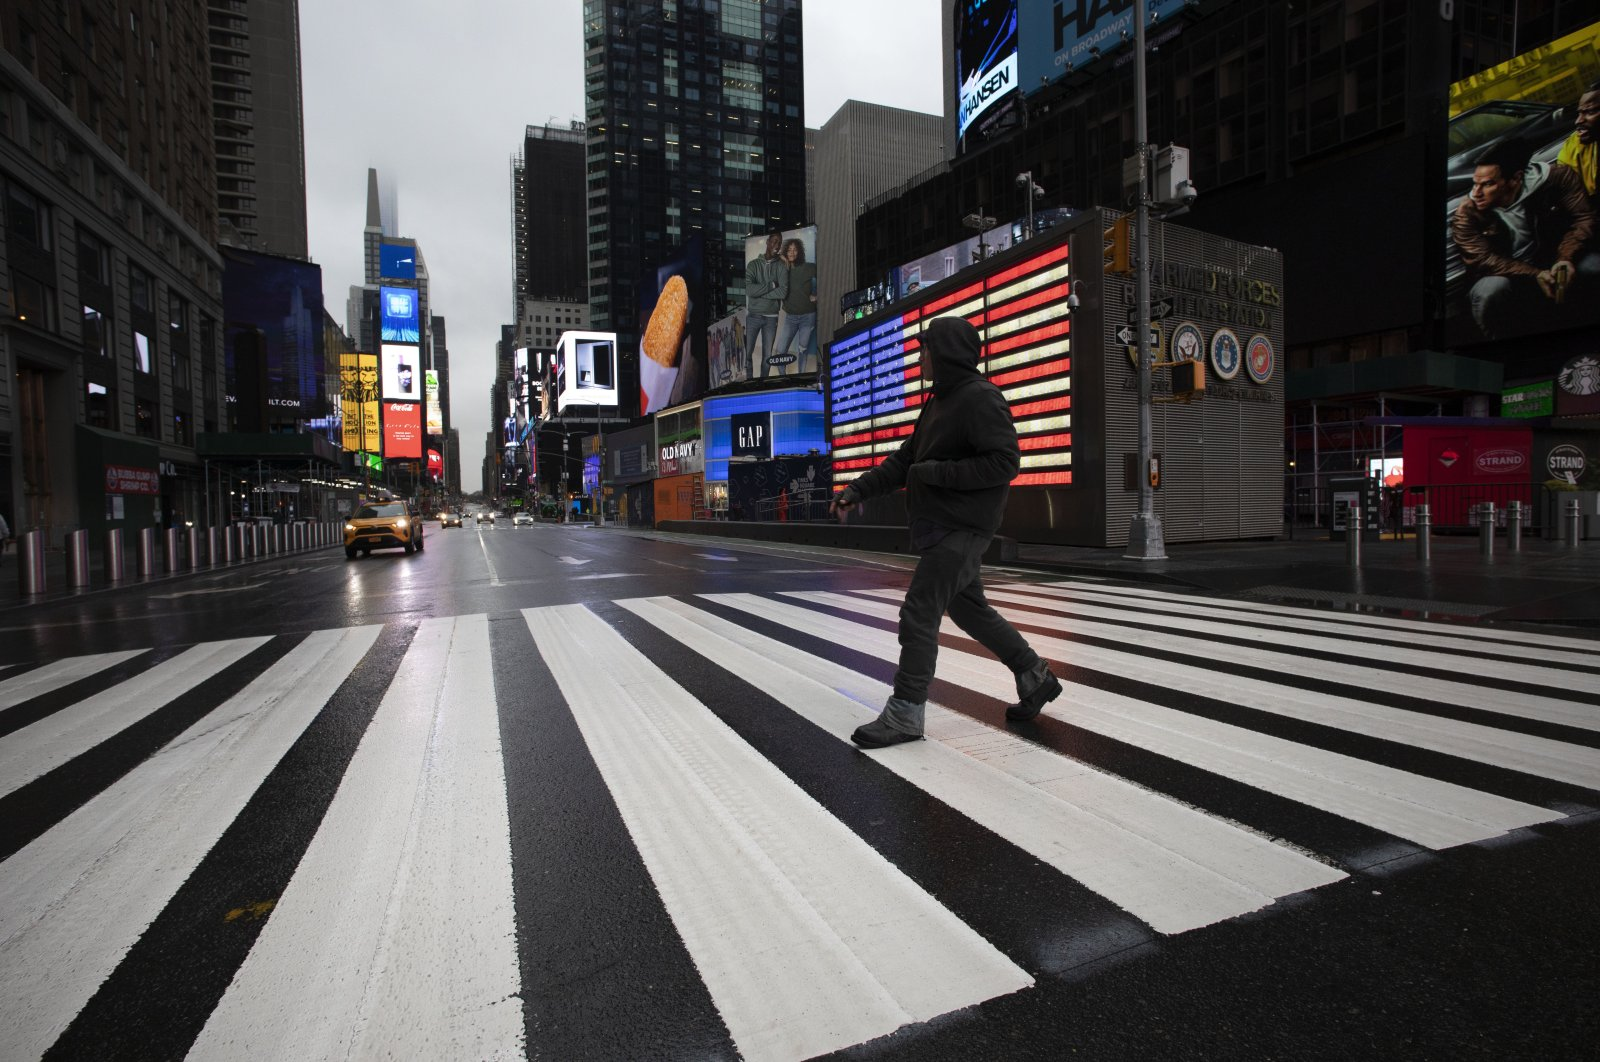 A man crosses the street in a nearly empty Times Square, which is usually very crowded on a weekday morning in New York, March 23, 2020. (AP Photo)